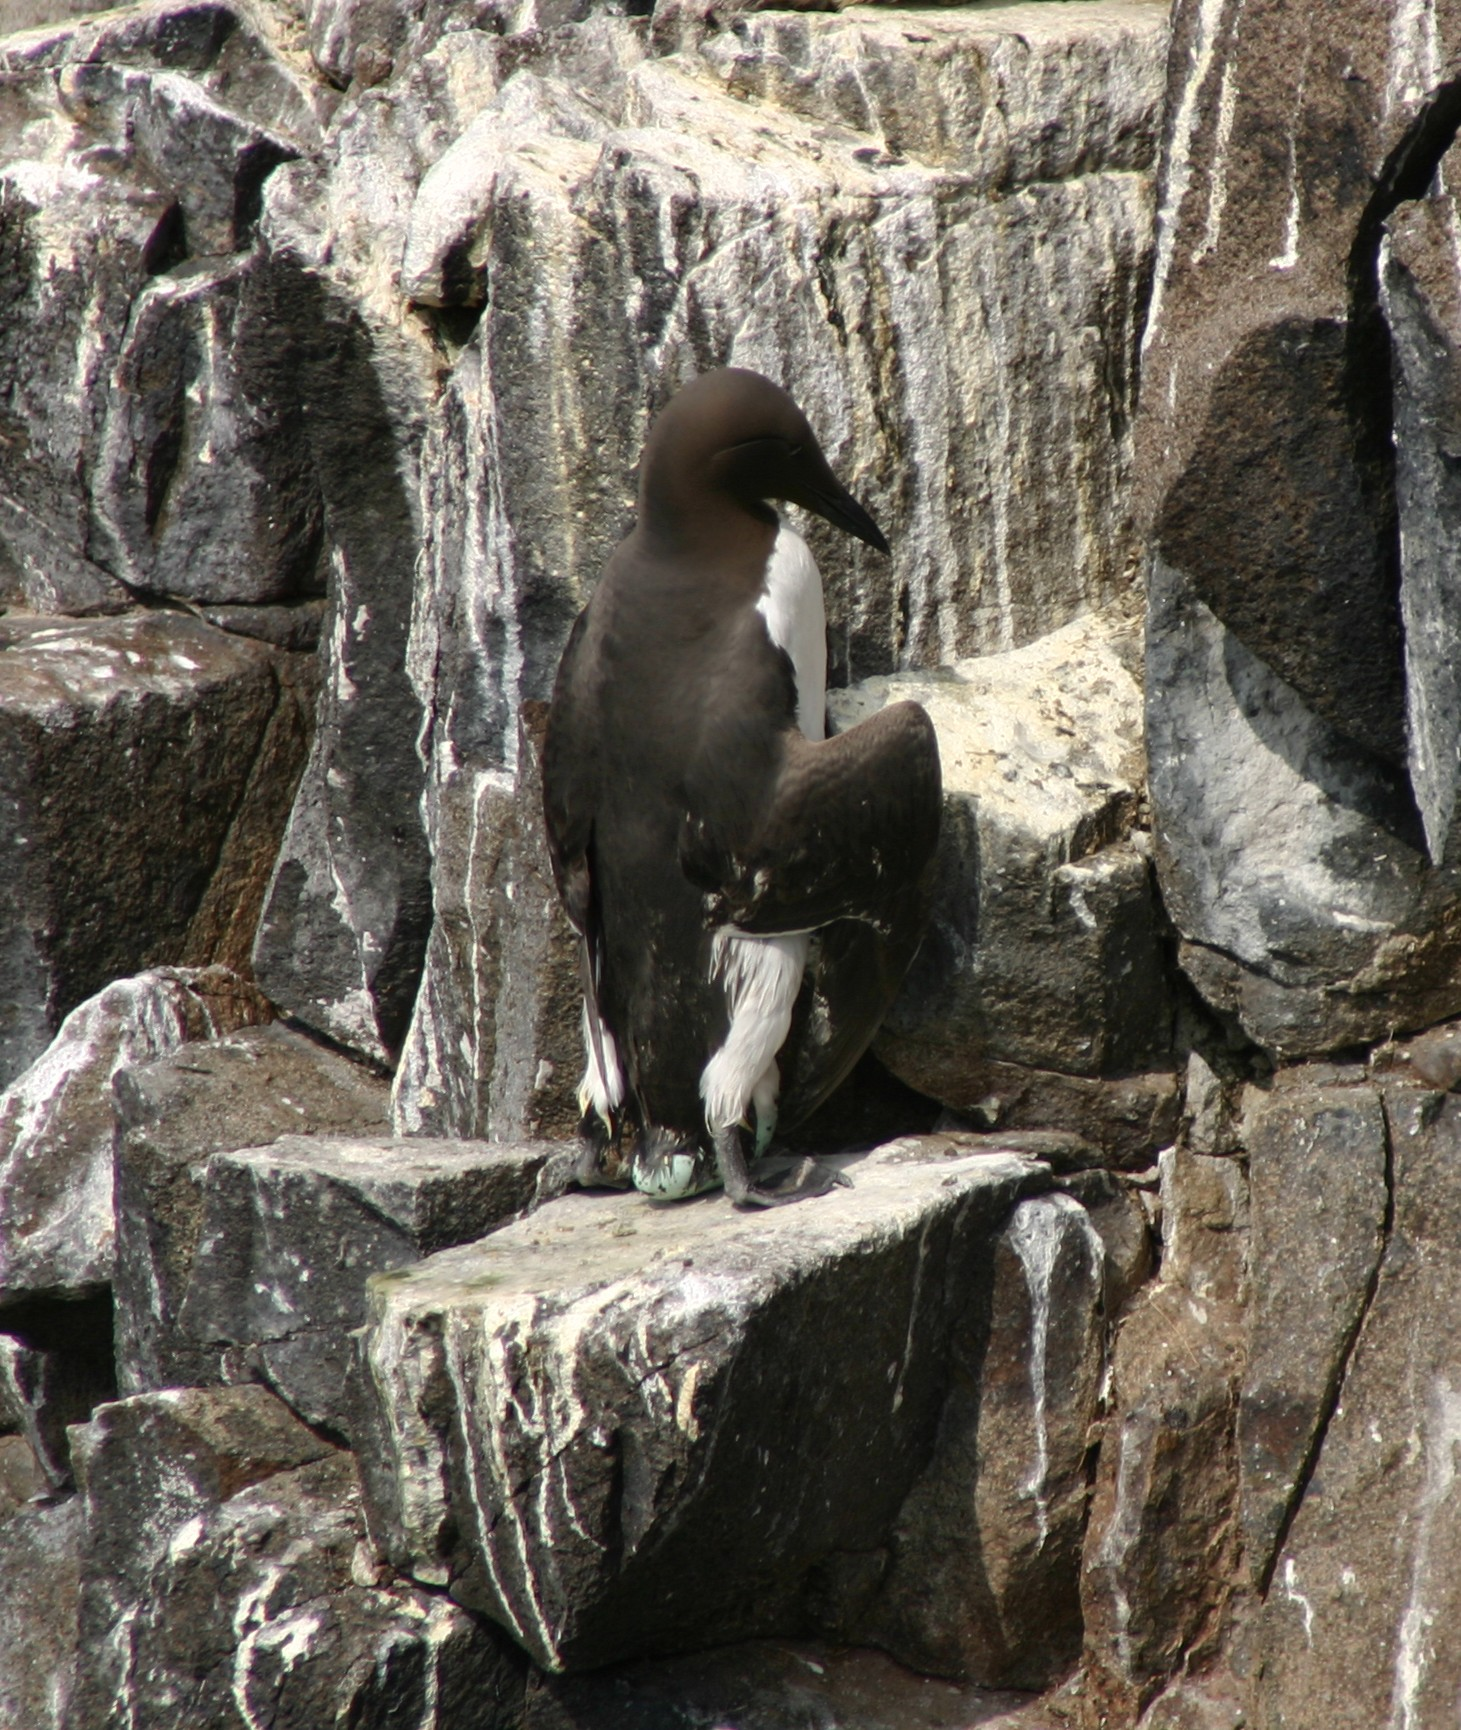 A Common Guillemot (Uria aalge) at the moment that the large single egg is laid. The timing of breeding of this species was followed for 19 consecutive years on the Isle of May, southeast Scotland. Photo credit: M P Harris